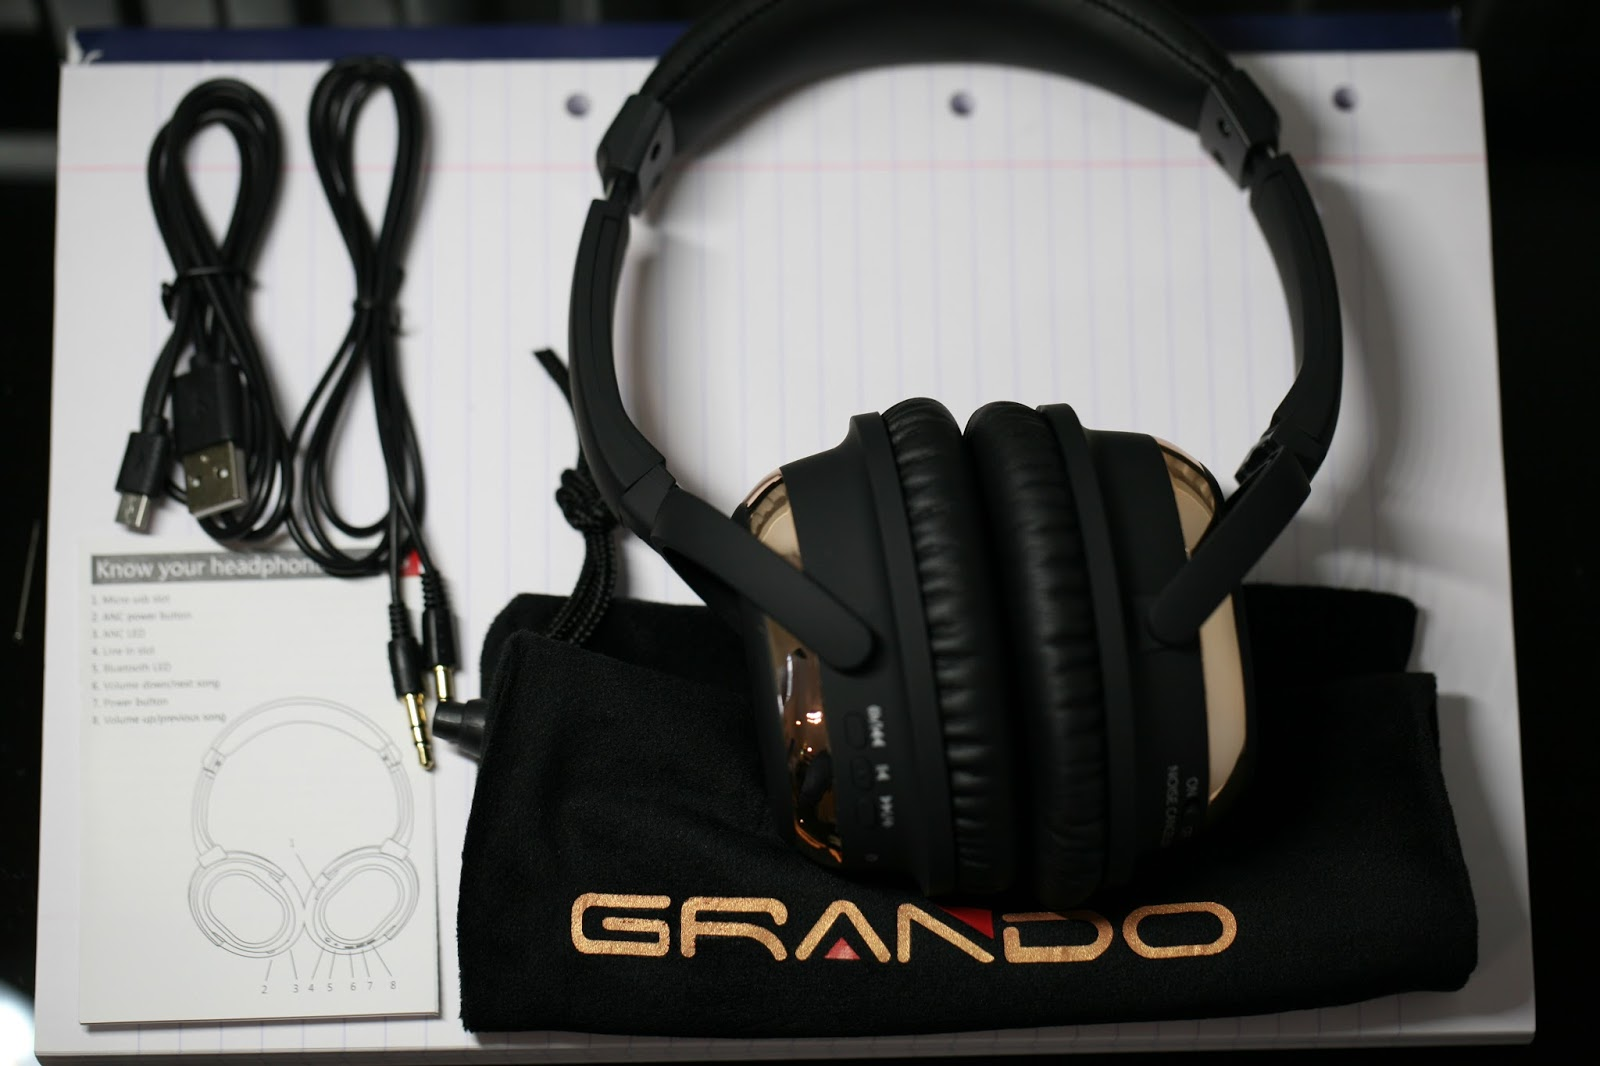 GRANDO Active Noise Cancelling Headphones Review